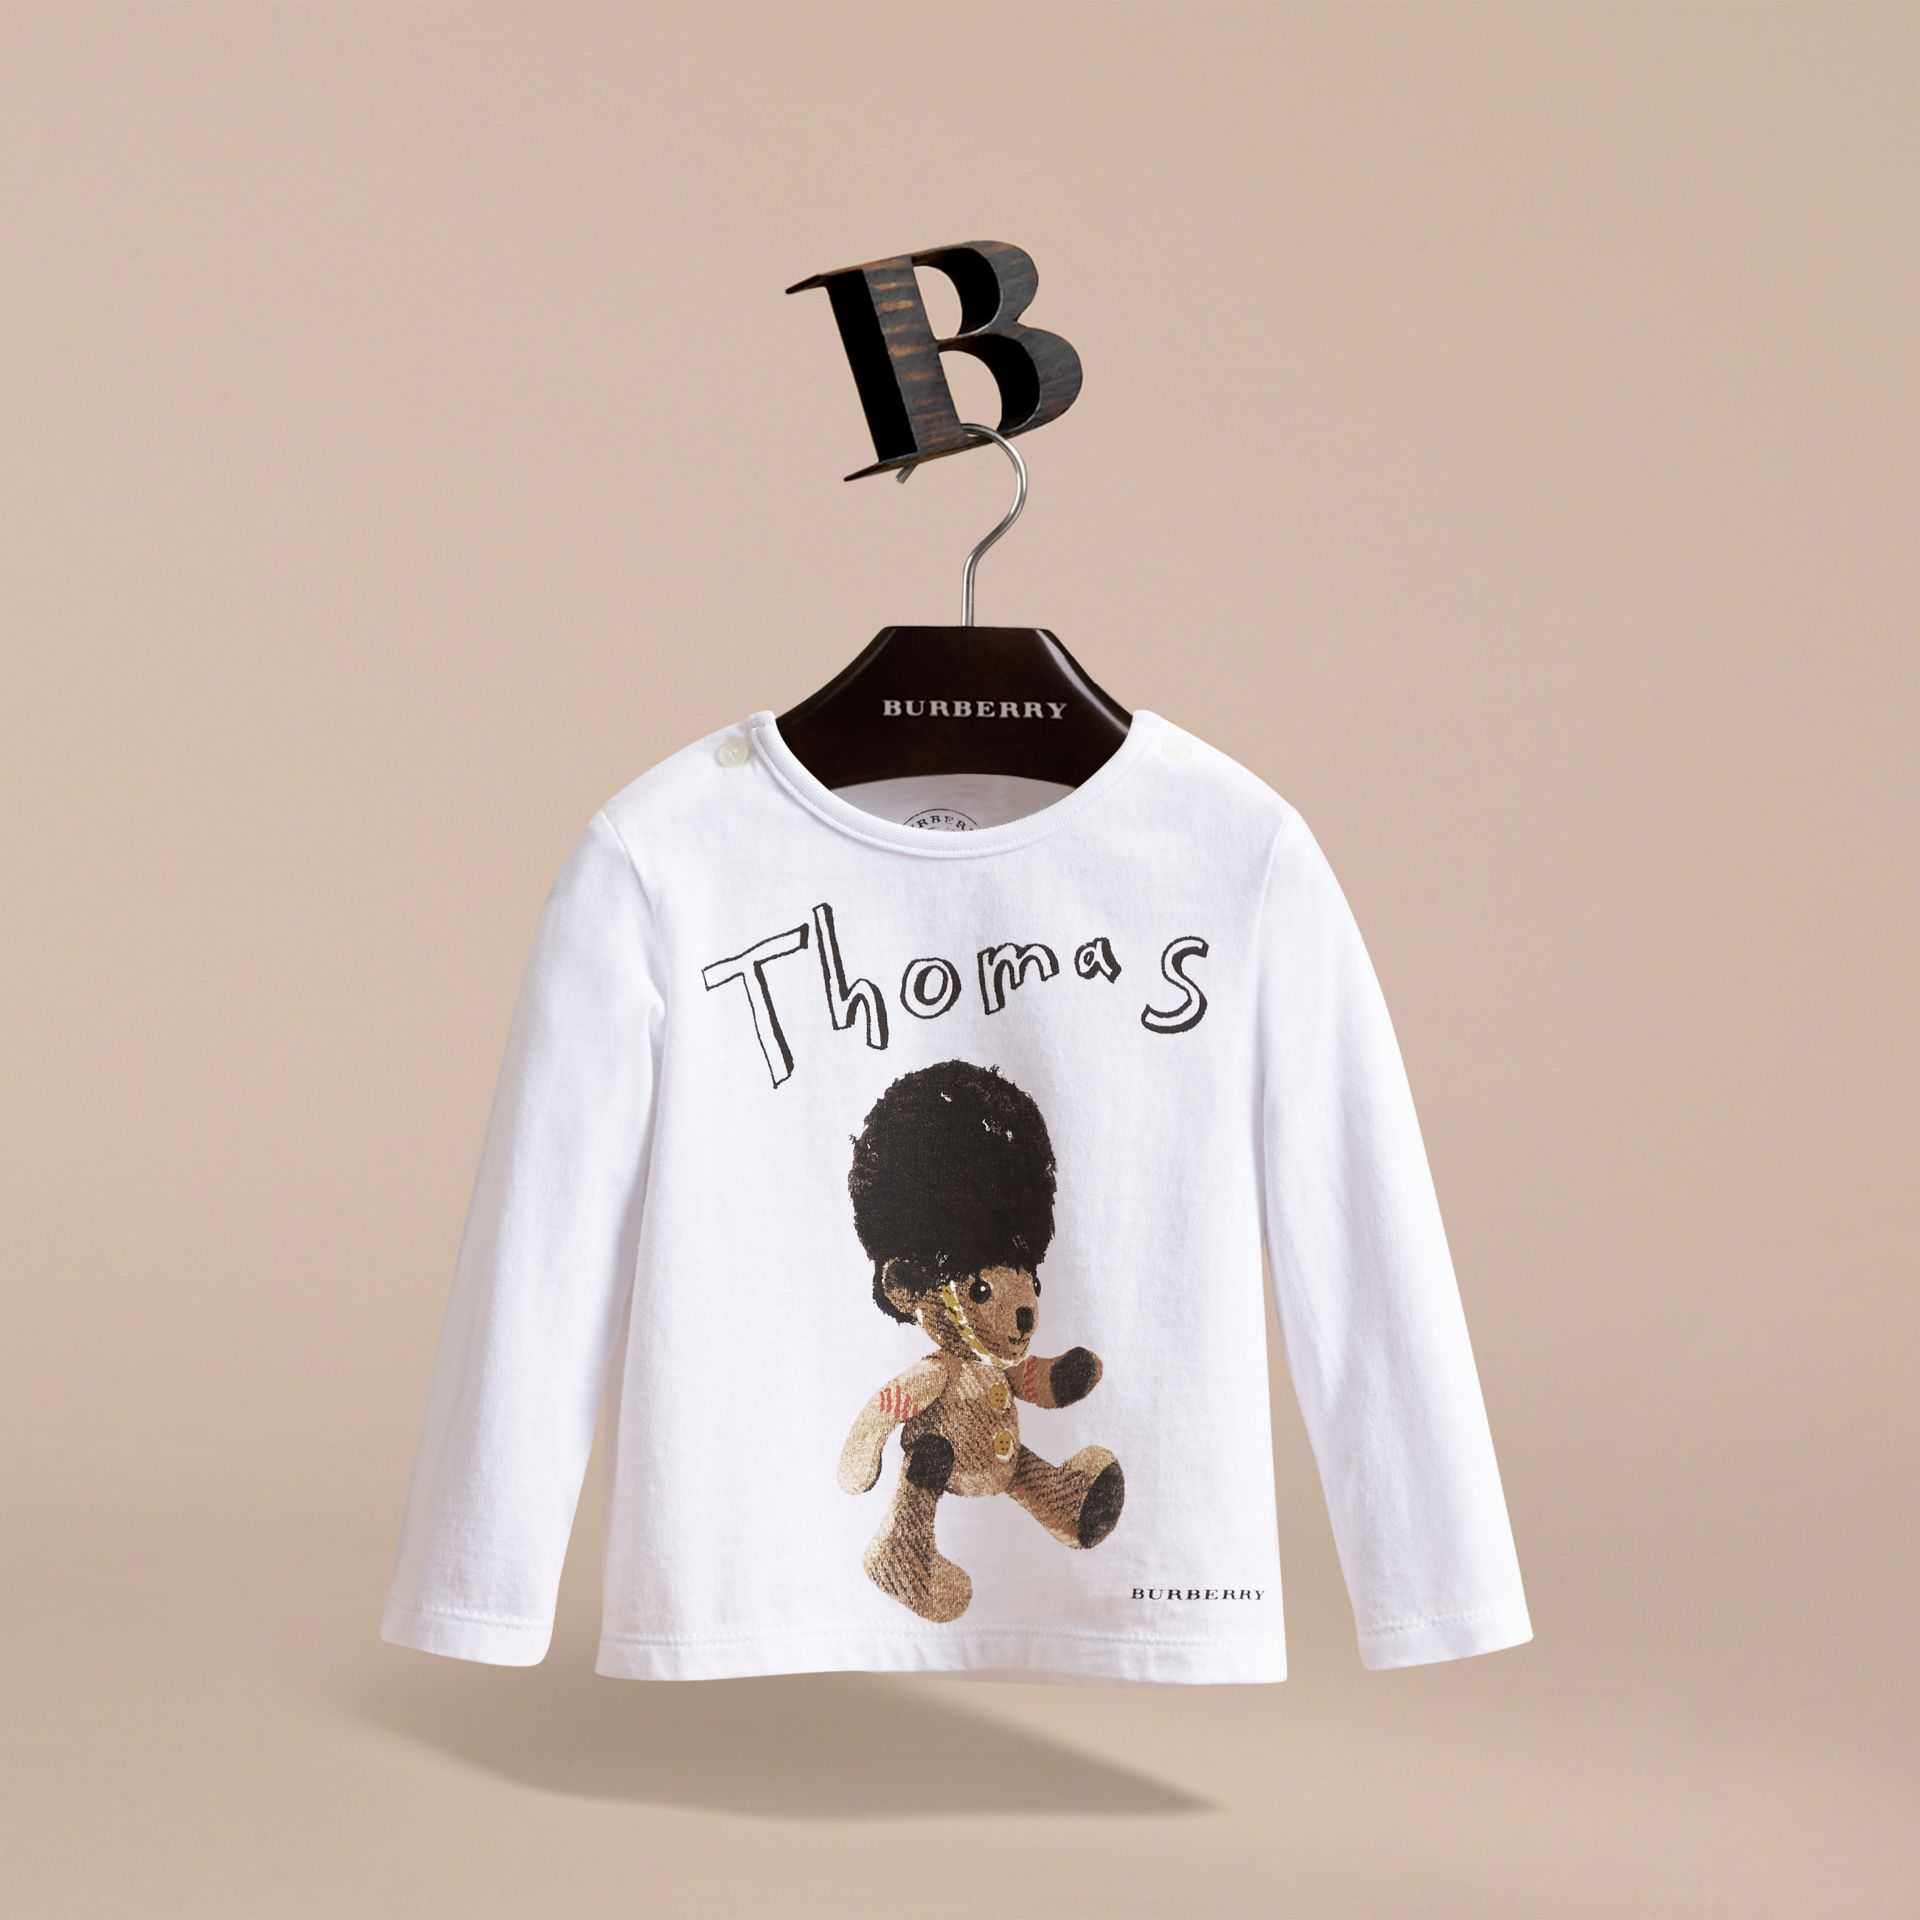 Haut en coton avec imprimé Thomas Bear Garde royale - Enfant | Burberry - photo de la galerie 3